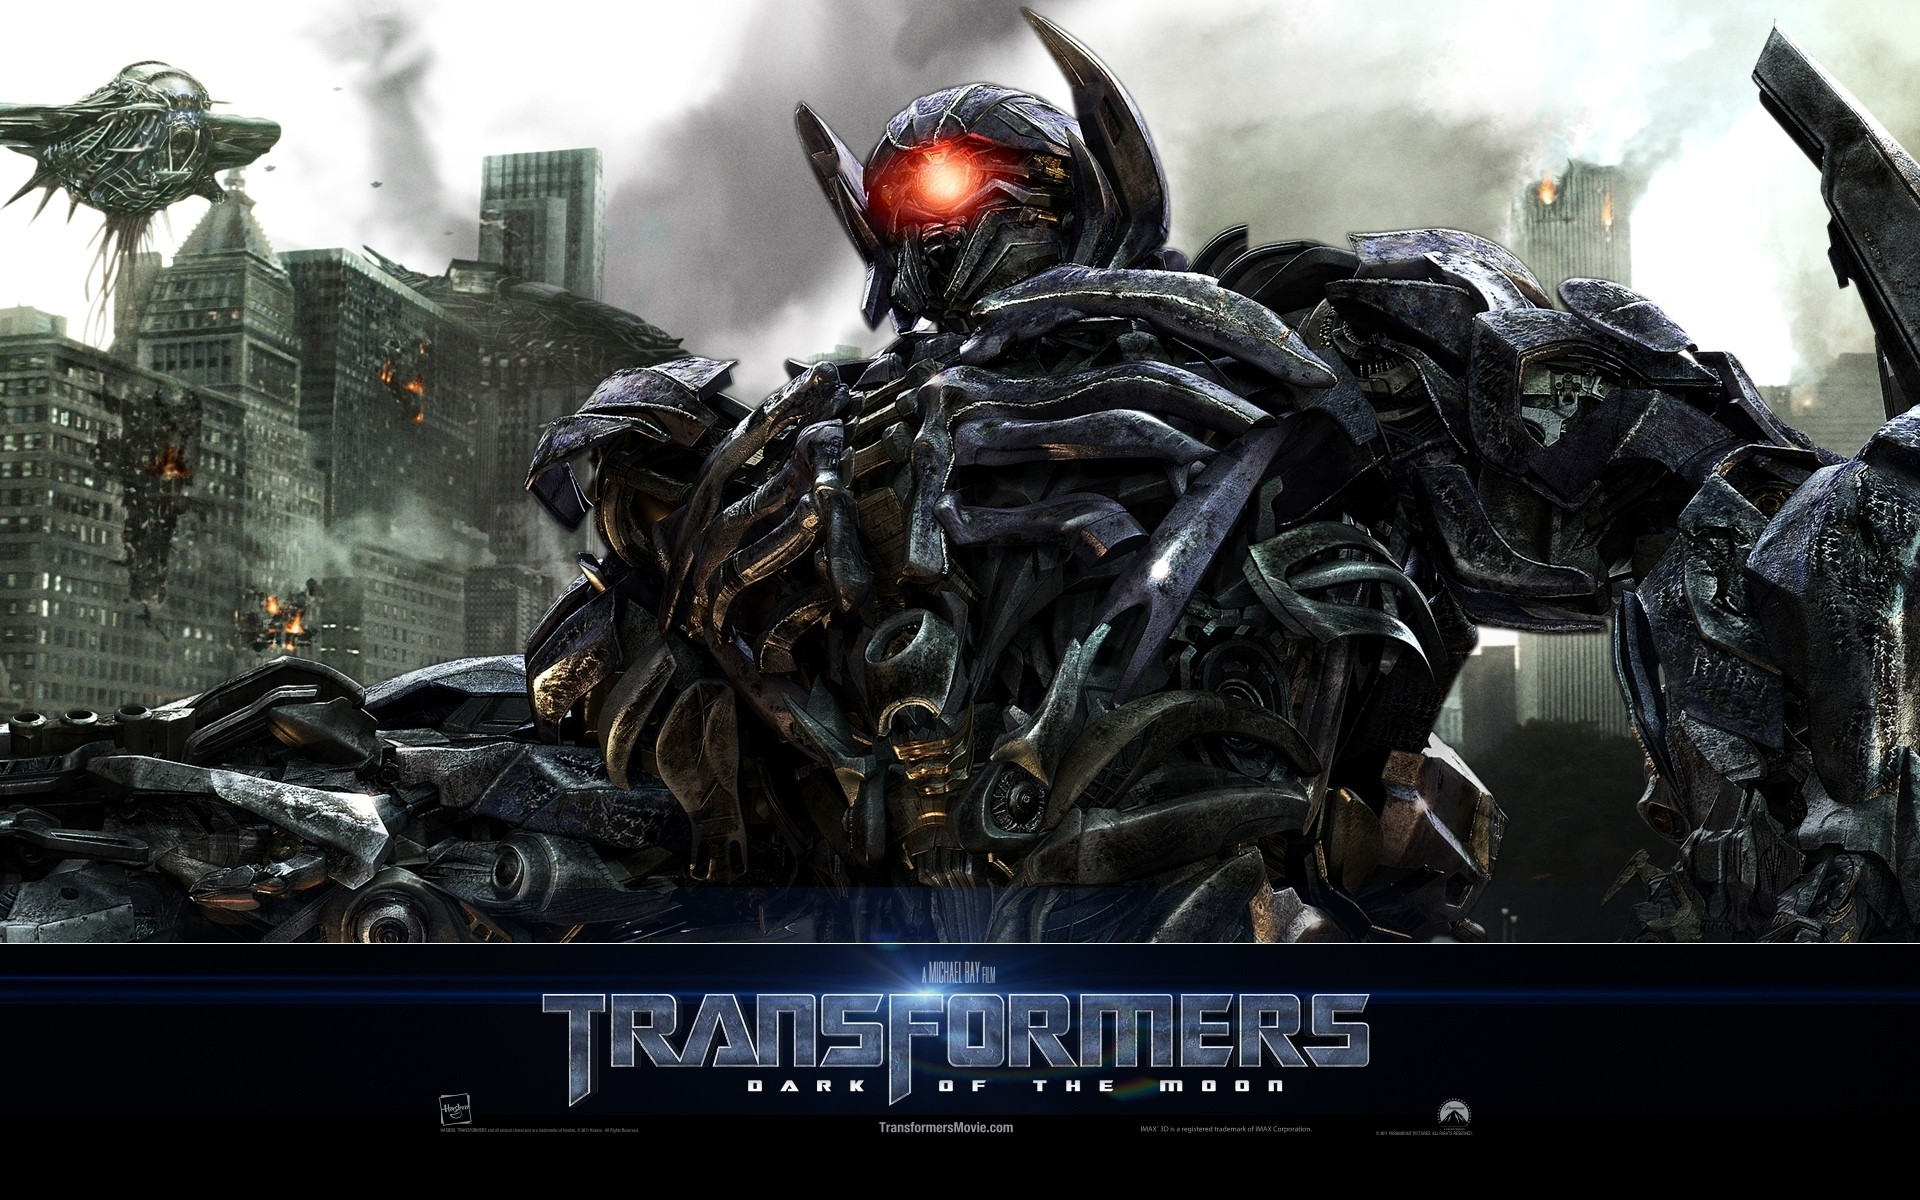 Transformers - Dark of the moon (new transformers)